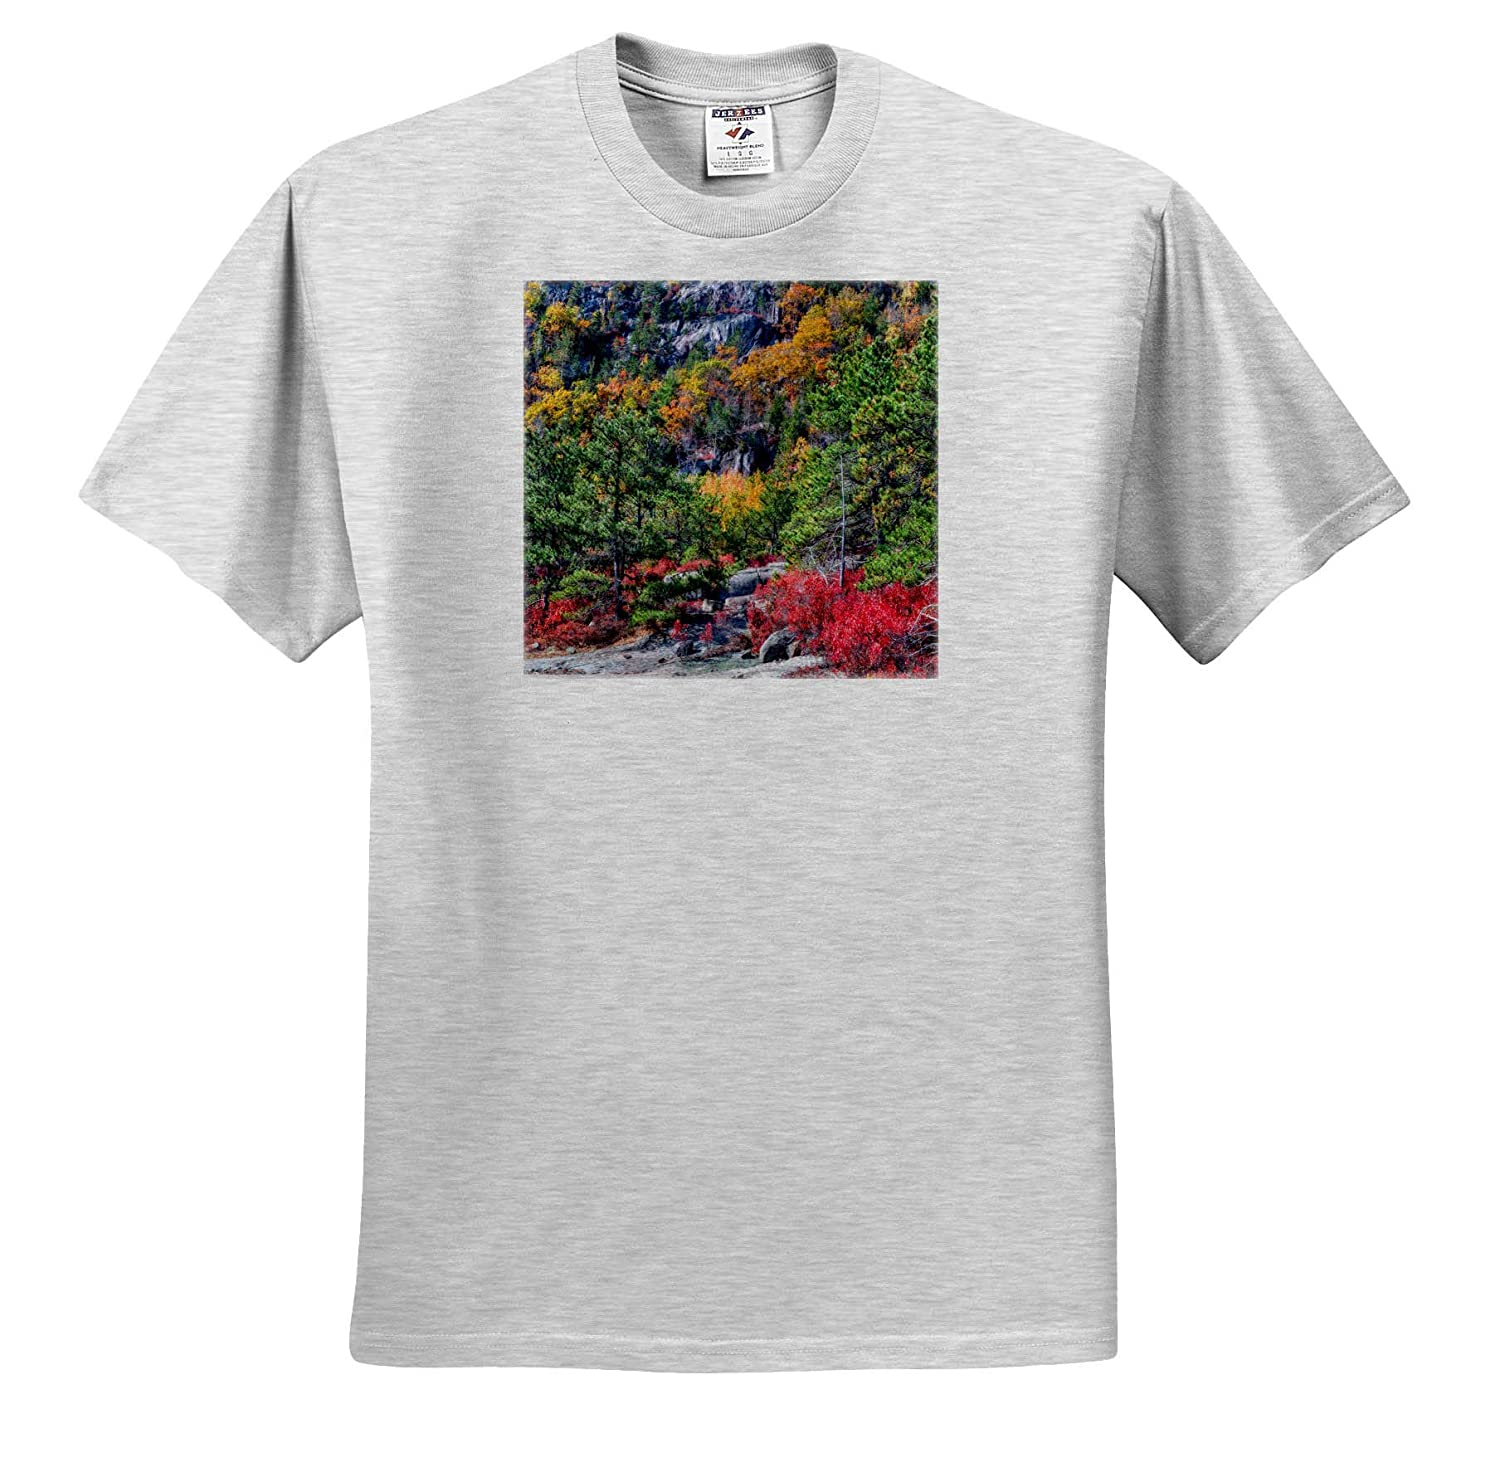 Landscapes Autumn Leaves on Hillside ts/_317144 Adult T-Shirt XL 3dRose Mike Swindle Photography